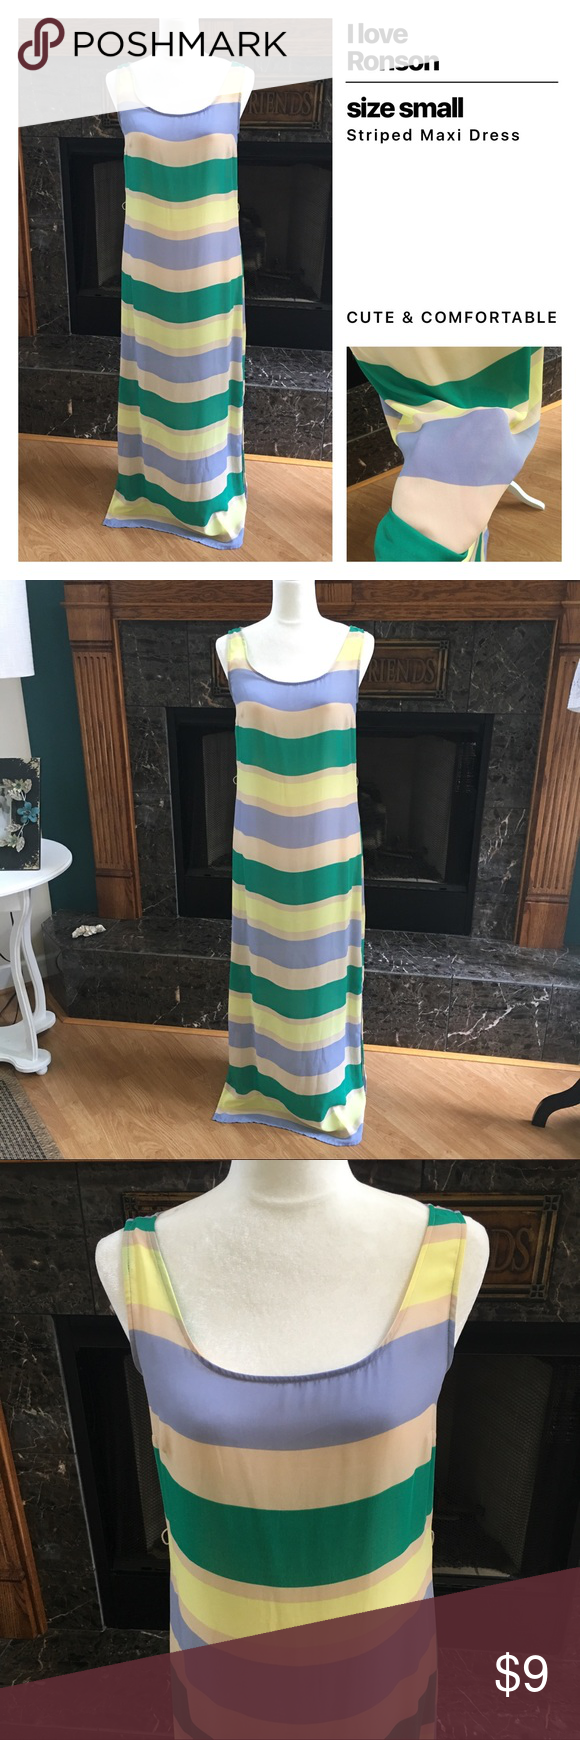 I Love Ronson Maxi Dress Cute striped Maxi Dress in size small. Used to have a belt. I can't locate the belt. I Love Ronson Dresses Maxi